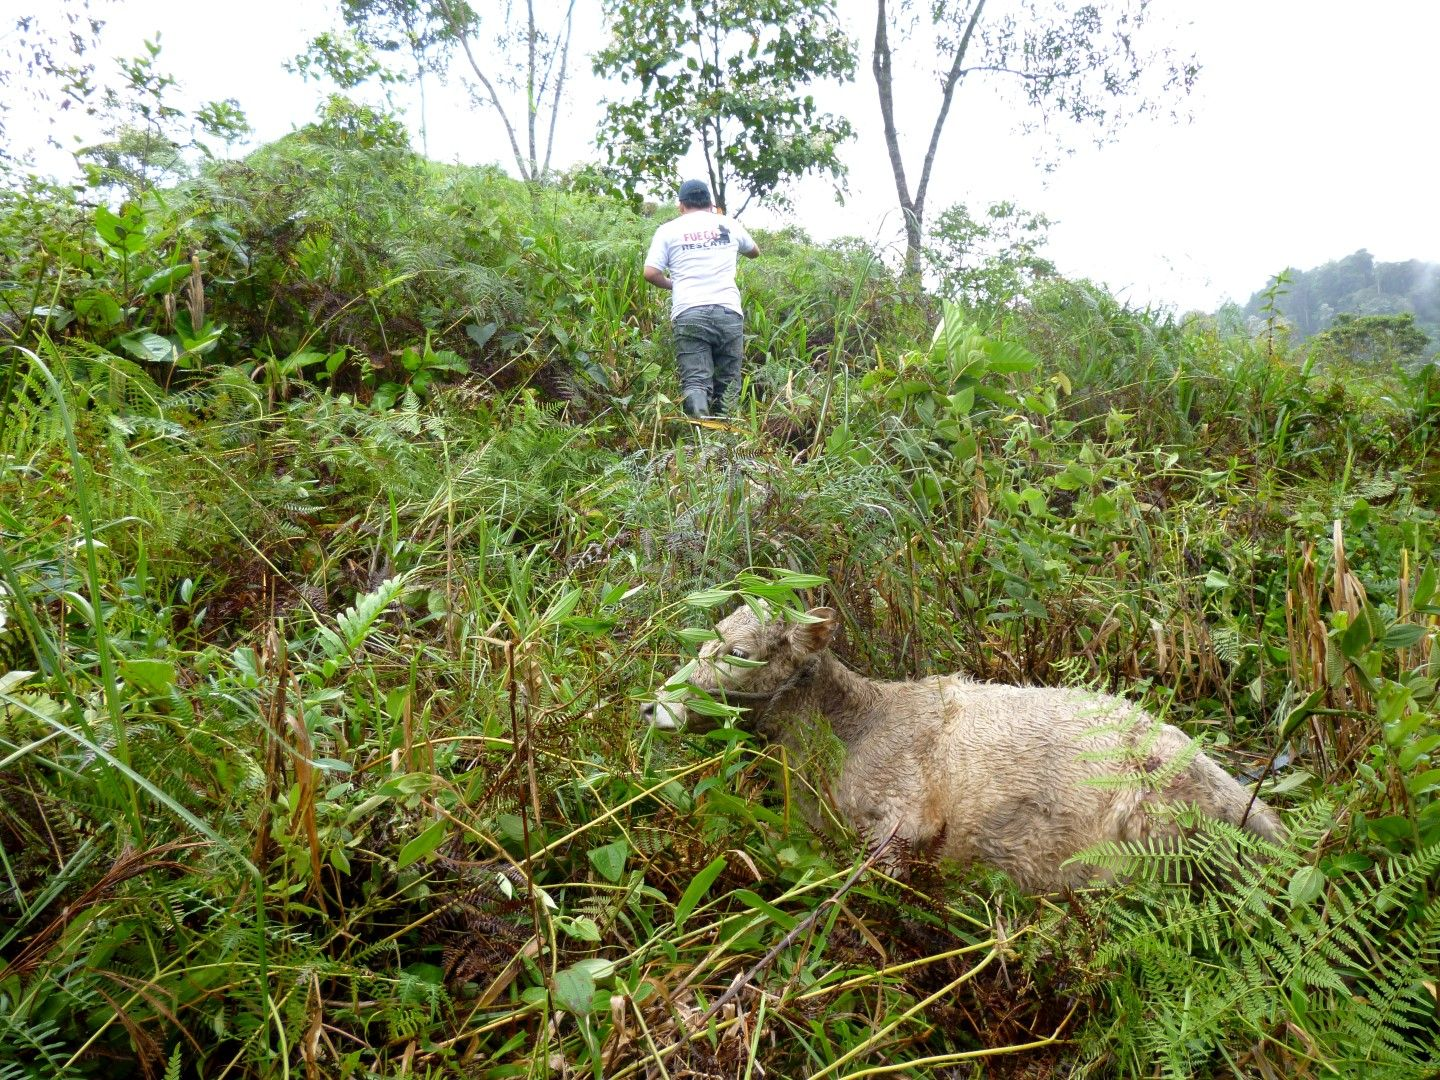 A man and calf walking in the midst of bushes and trees in the Jungle